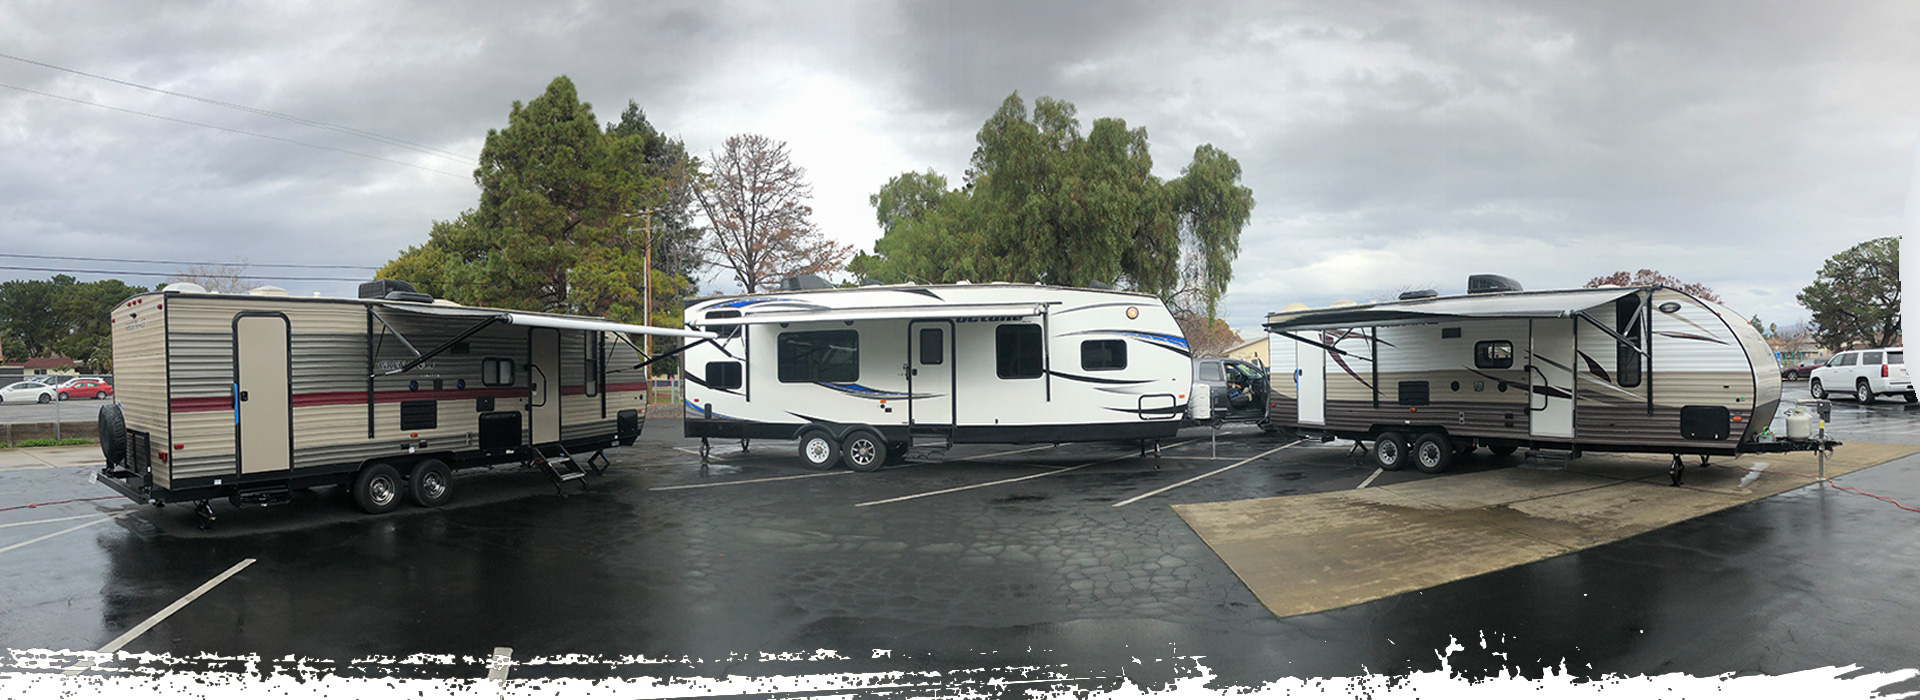 rv rental orchard california